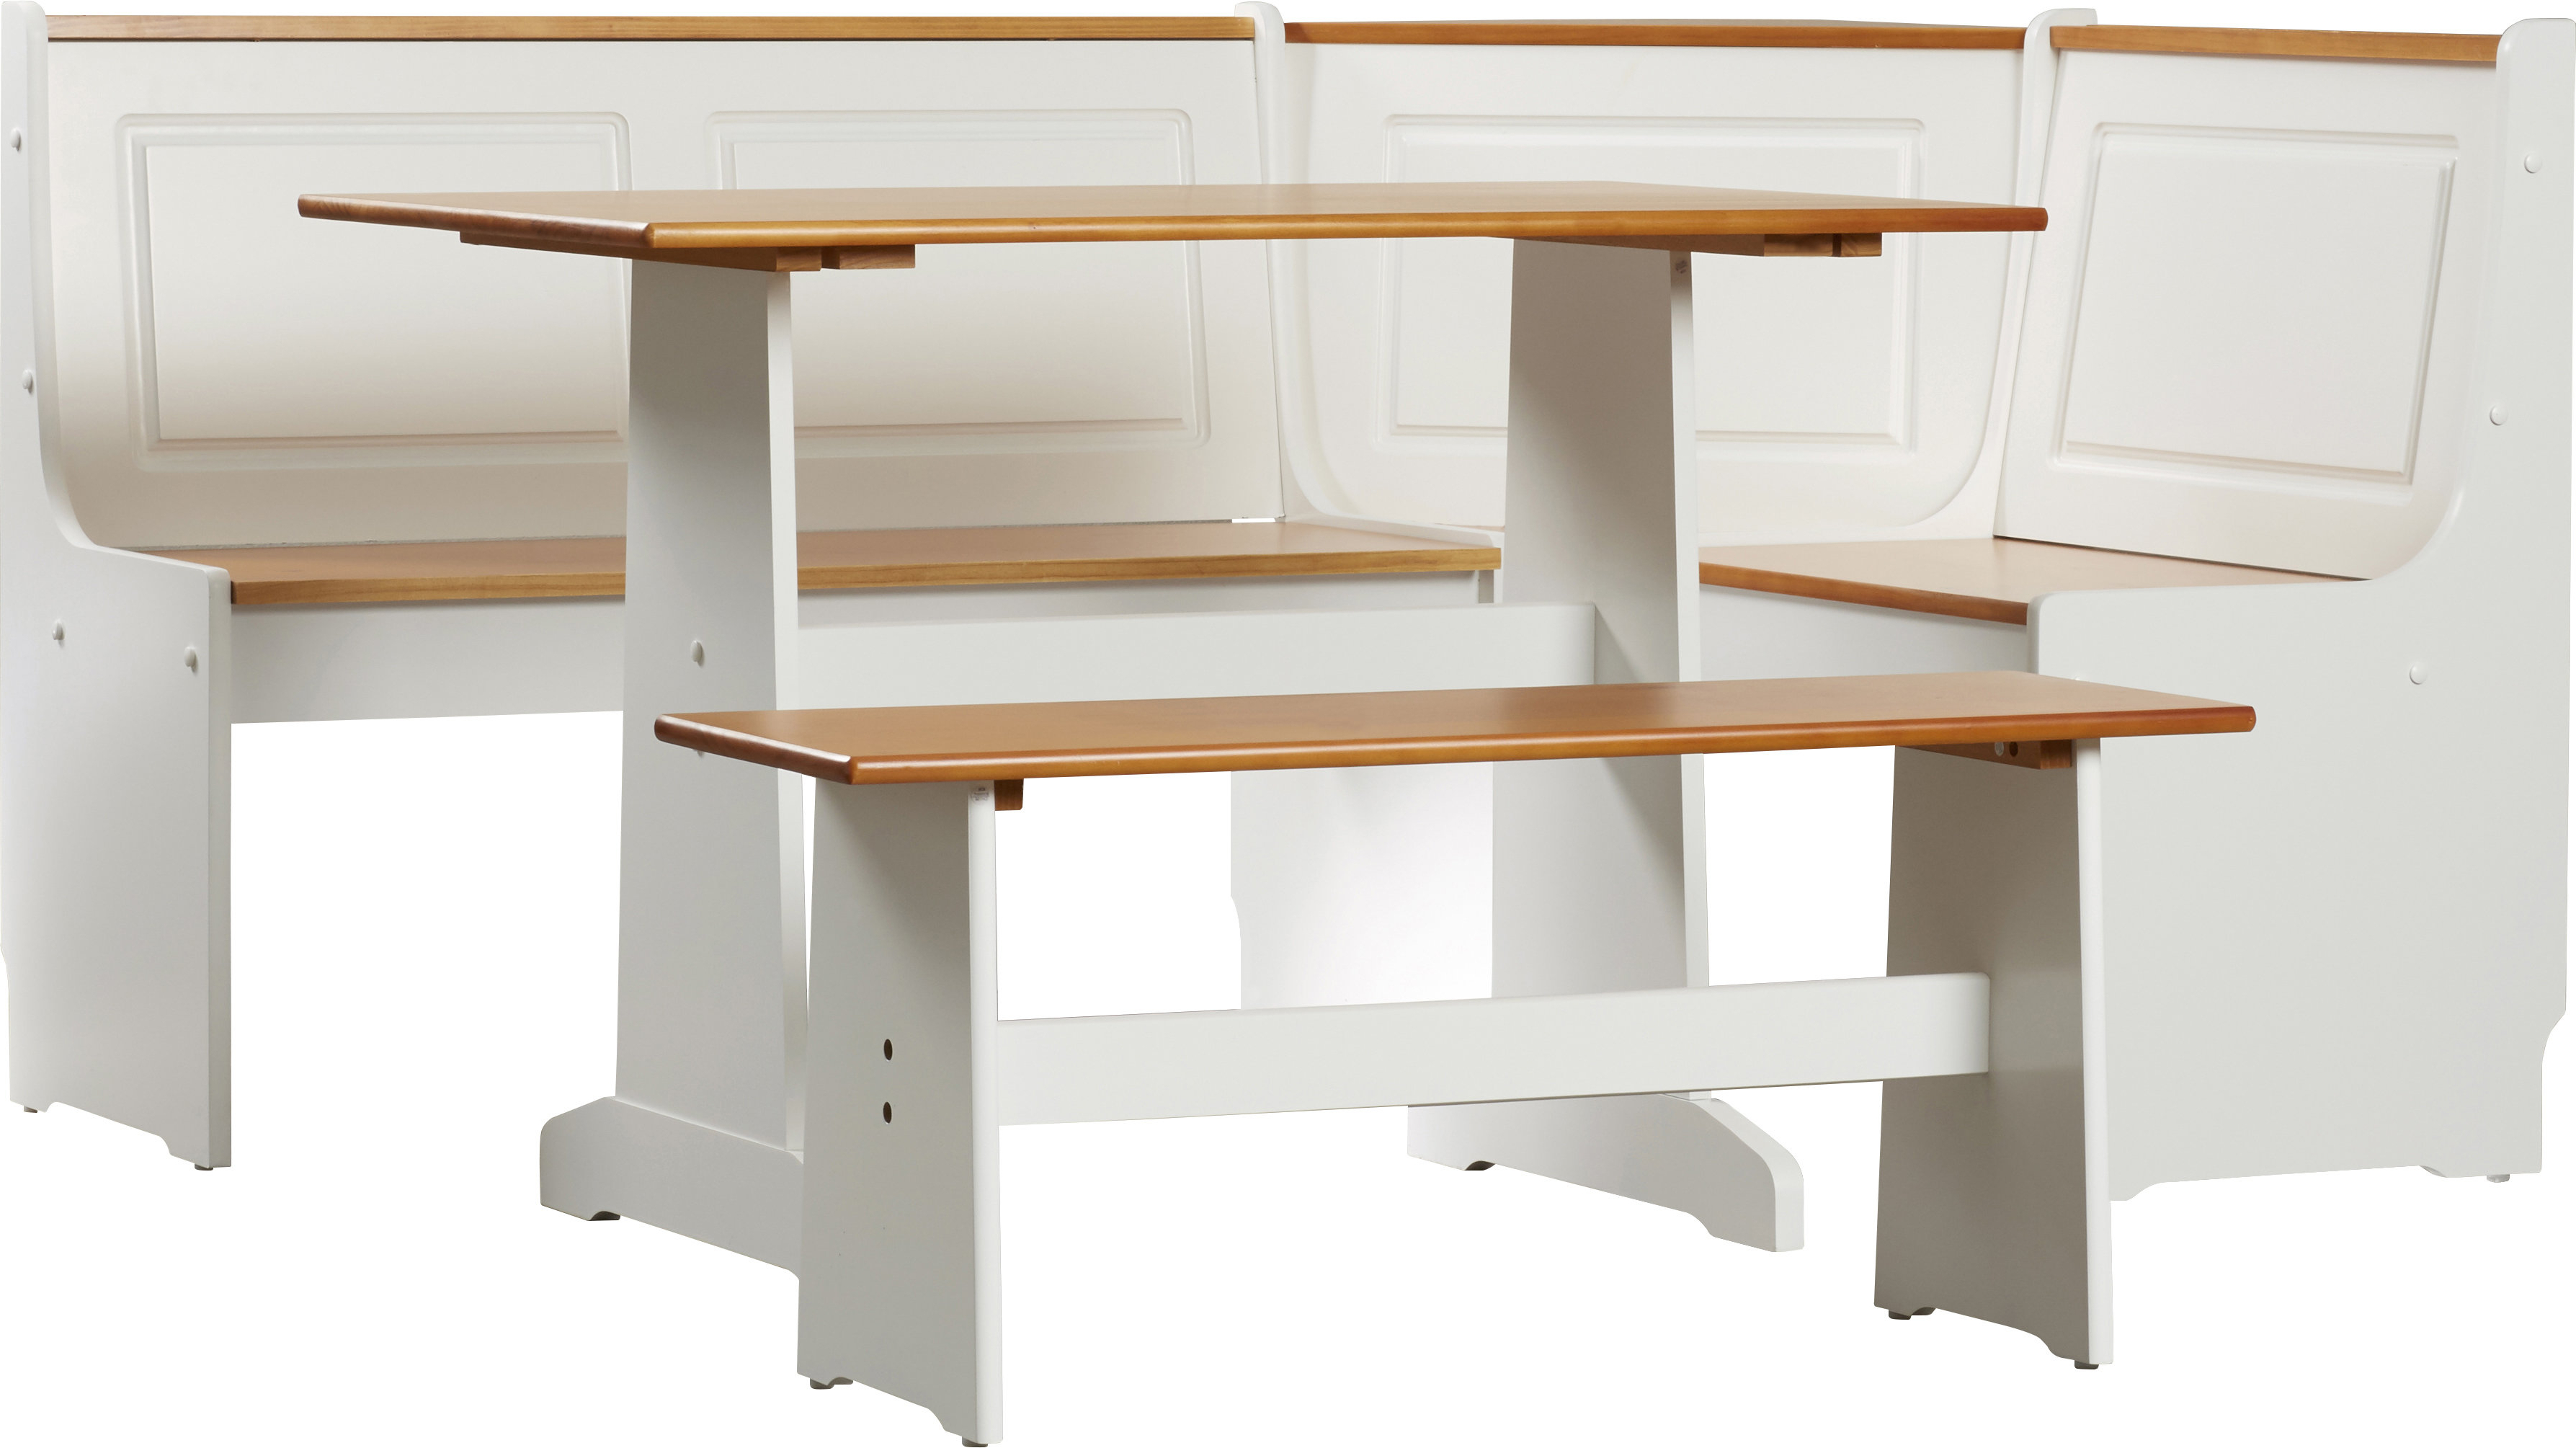 Ryker 3 Piece Dining Sets Pertaining To Latest Birtie 3 Piece Solid Wood Breakfast Nook Dining Set (View 13 of 20)